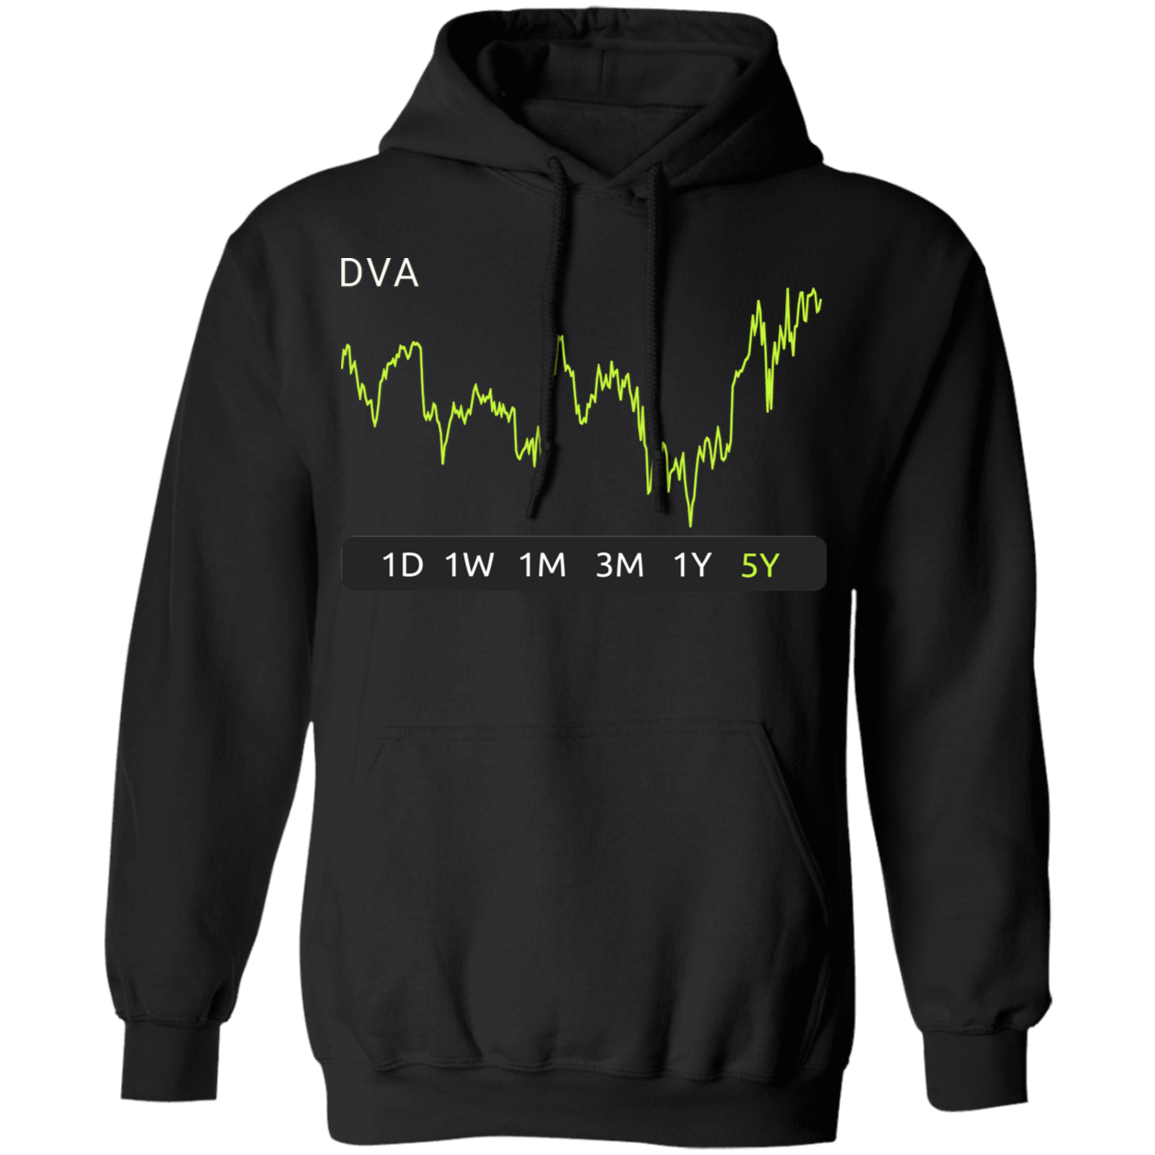 DVA Stock 5y Pullover Hoodie